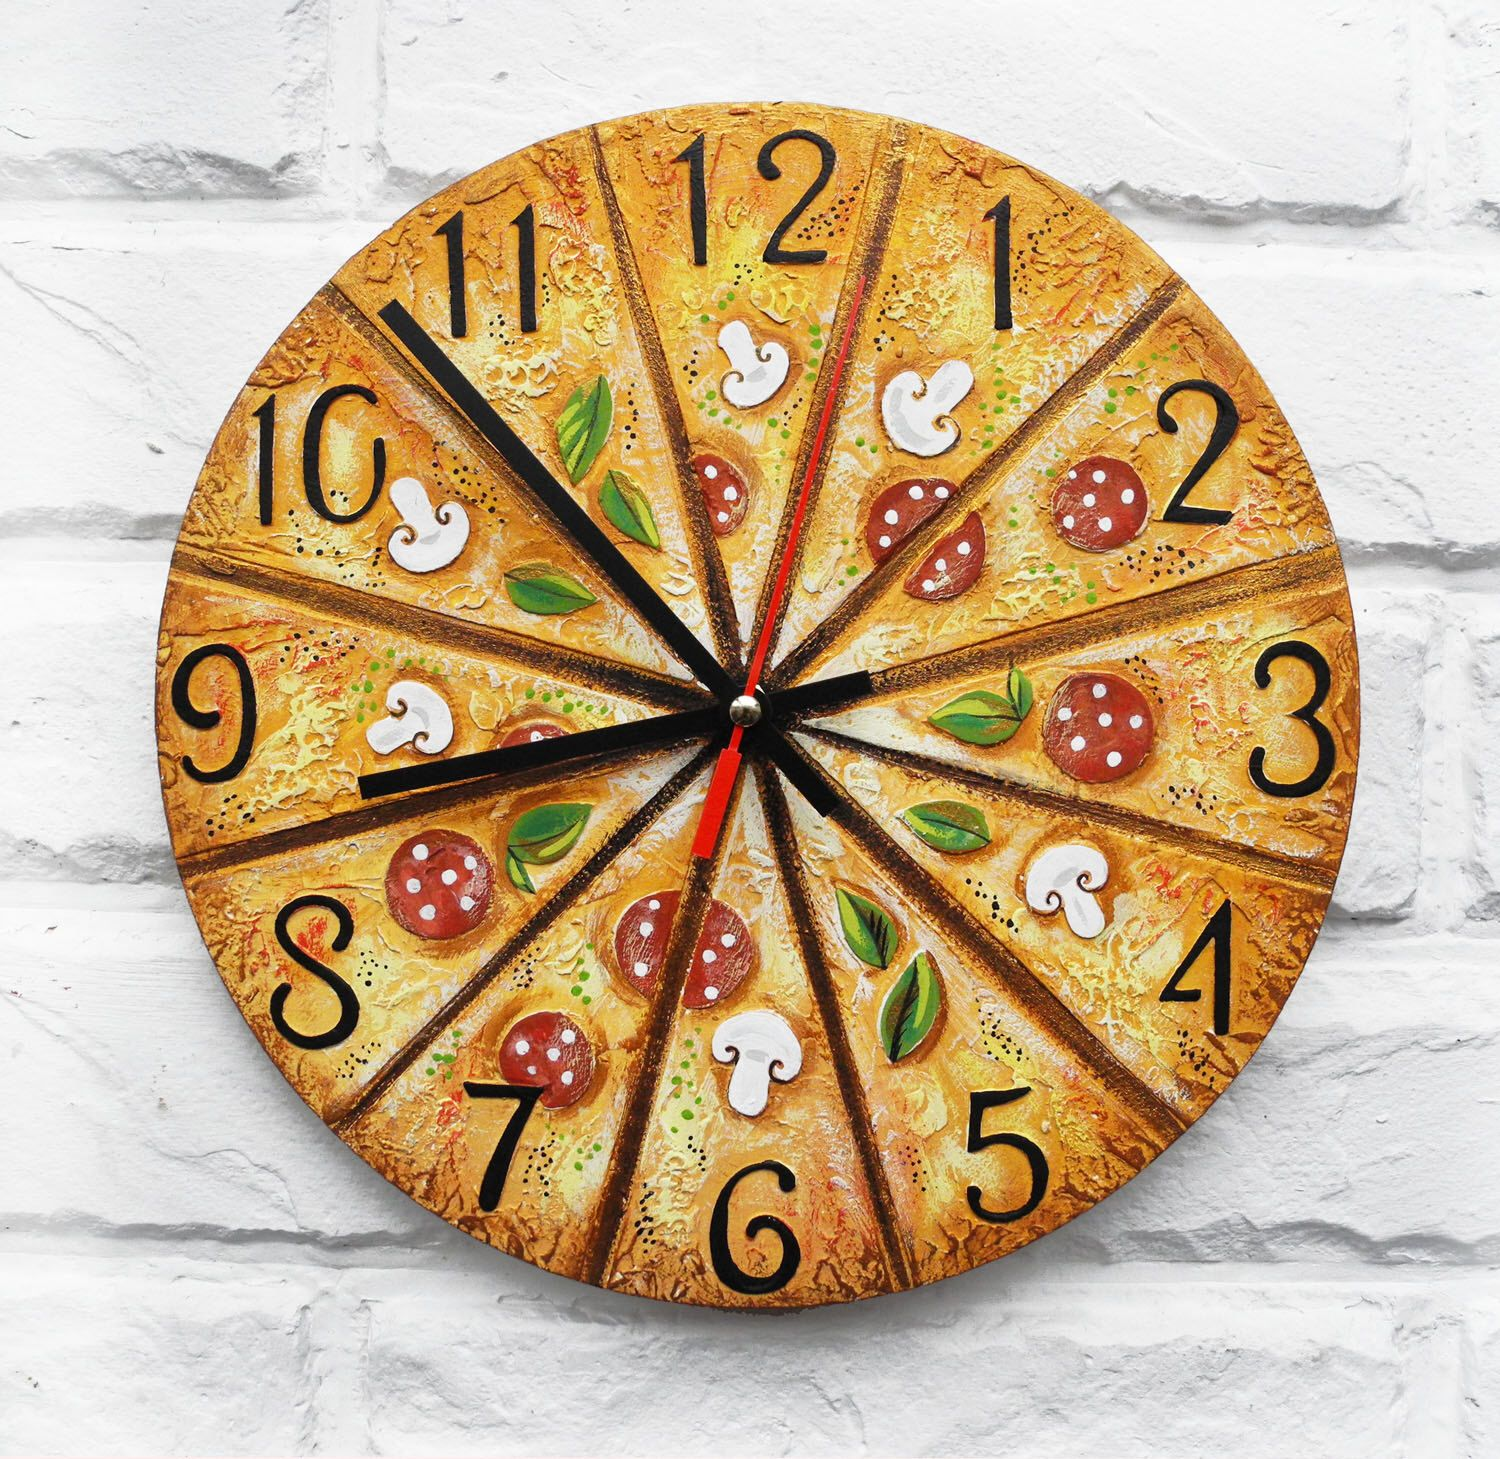 The Pizza, Italy dreams, Modern wall clock with numbers, White wall ...